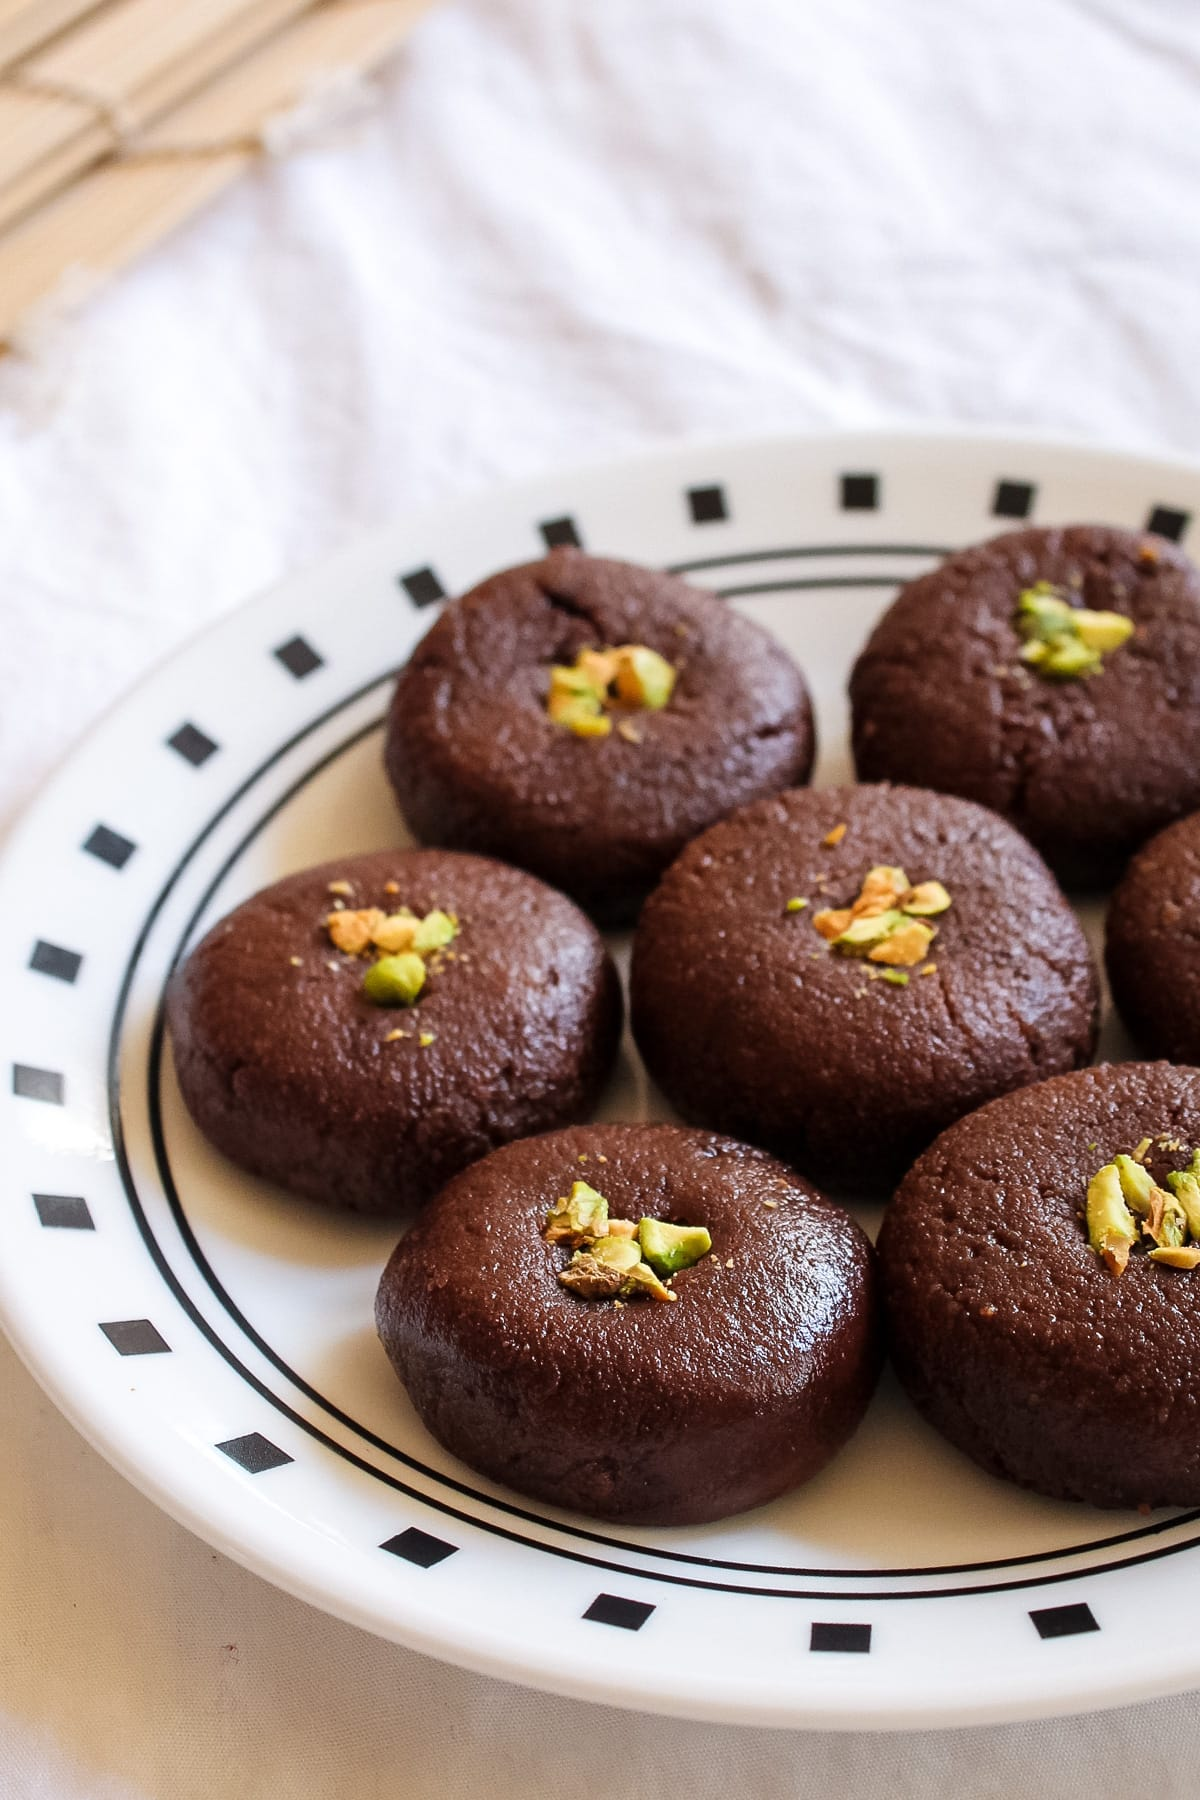 Close up of chocolate peda garnished with chopped pistachio in a plate